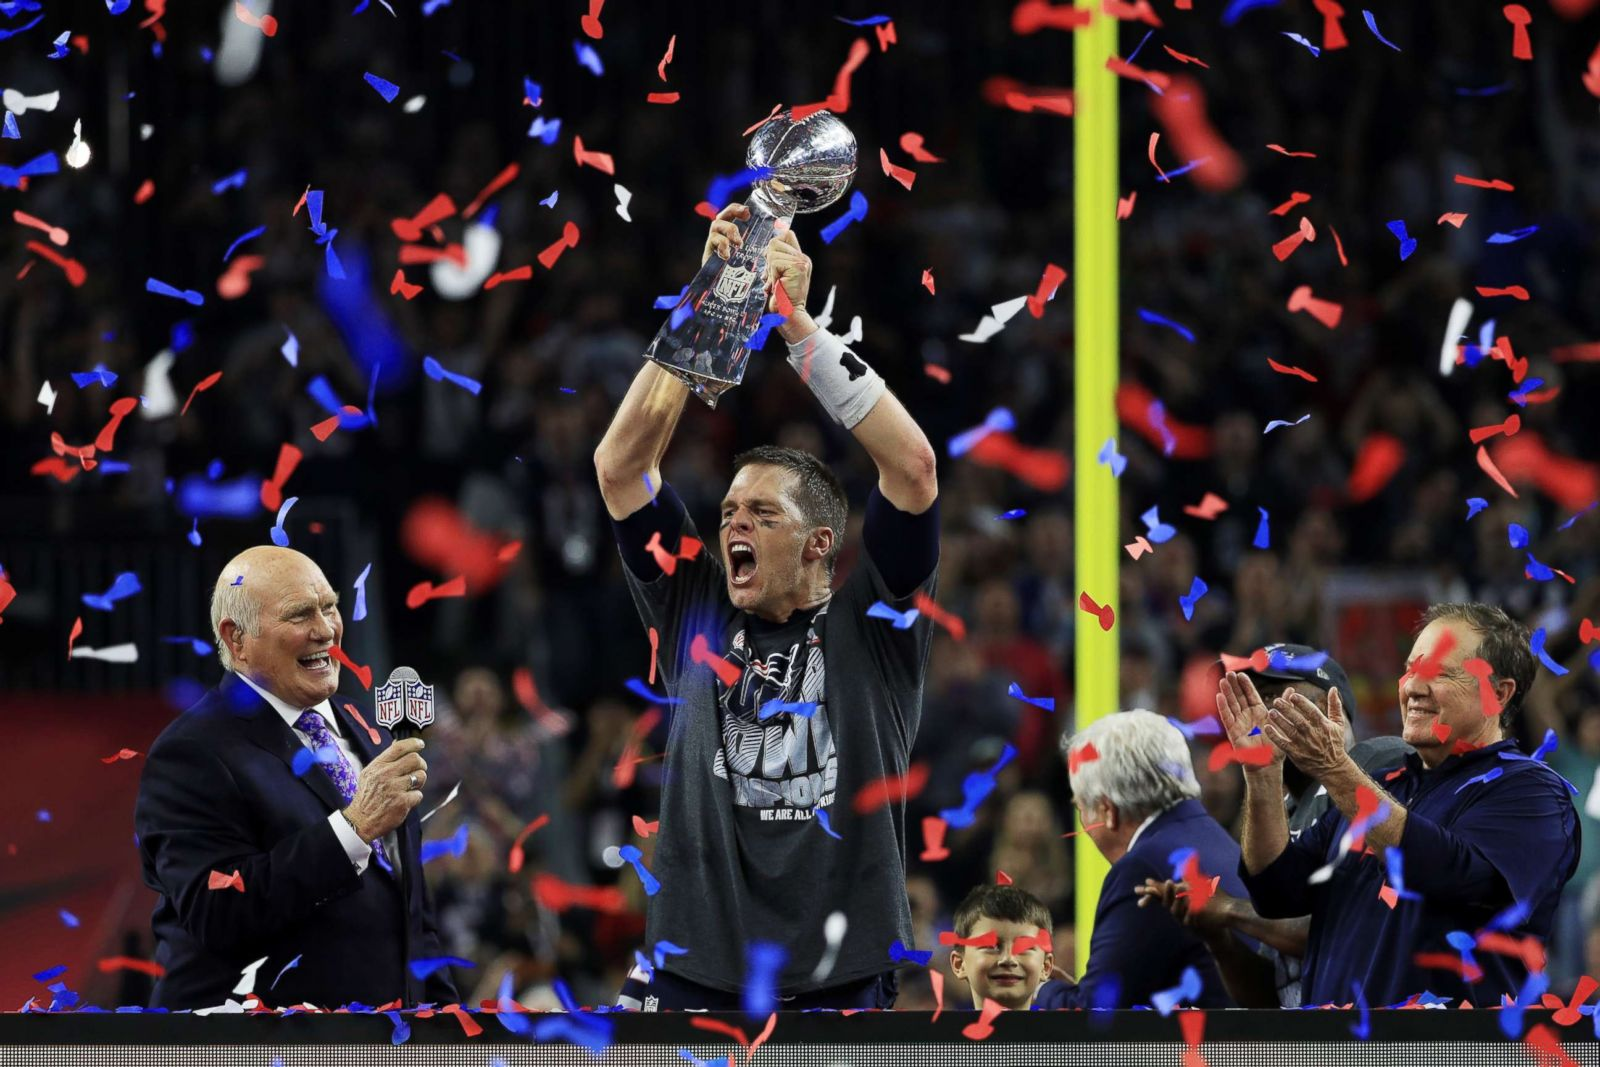 With another Super Bowl win fda09e89c